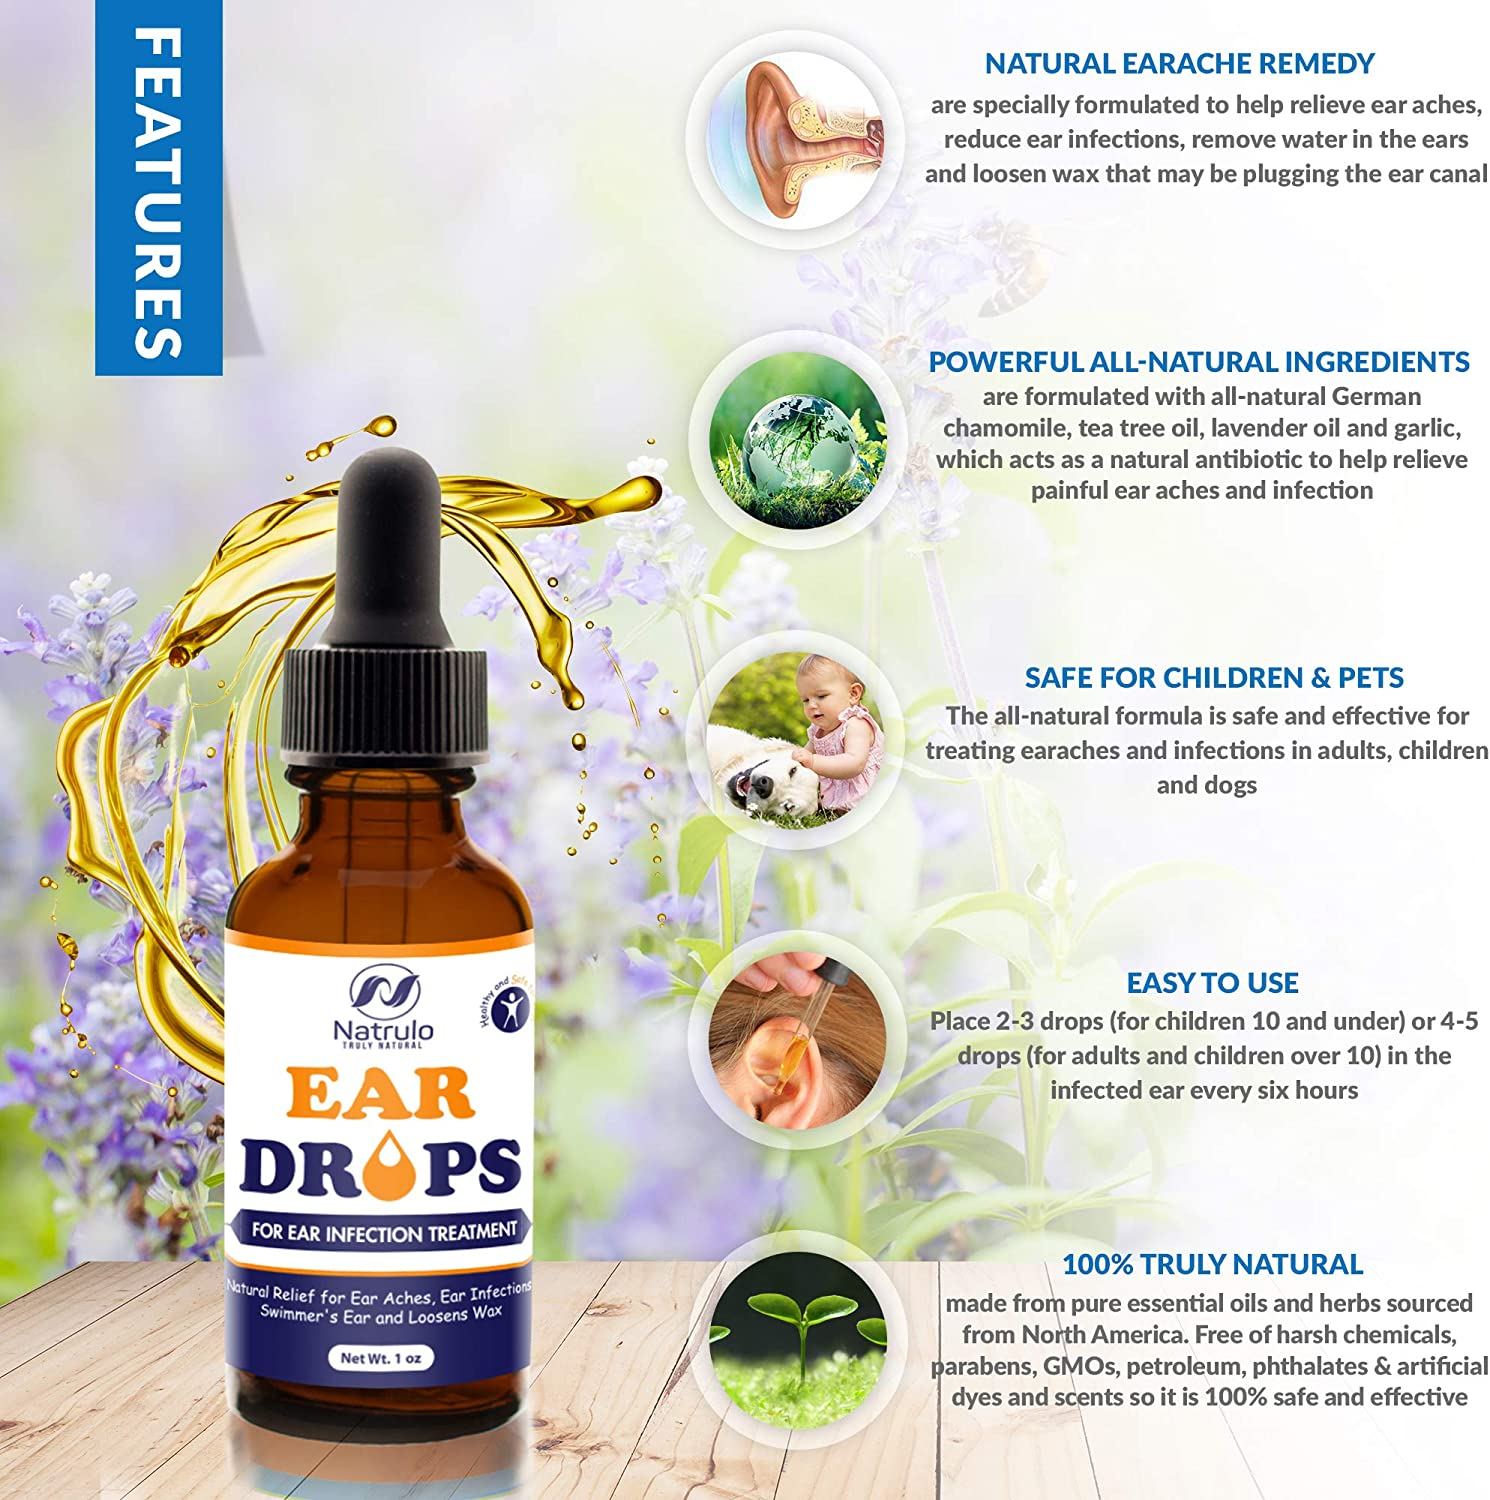 Amazon Com Natrulo Natural Ear Drops For Ear Infection Treatment Homeopathic Herbal Eardrops For Adults Children Pets Relieves Ear Aches Infections Swimmer S Ear Loosens Wax Kids Safe Made In